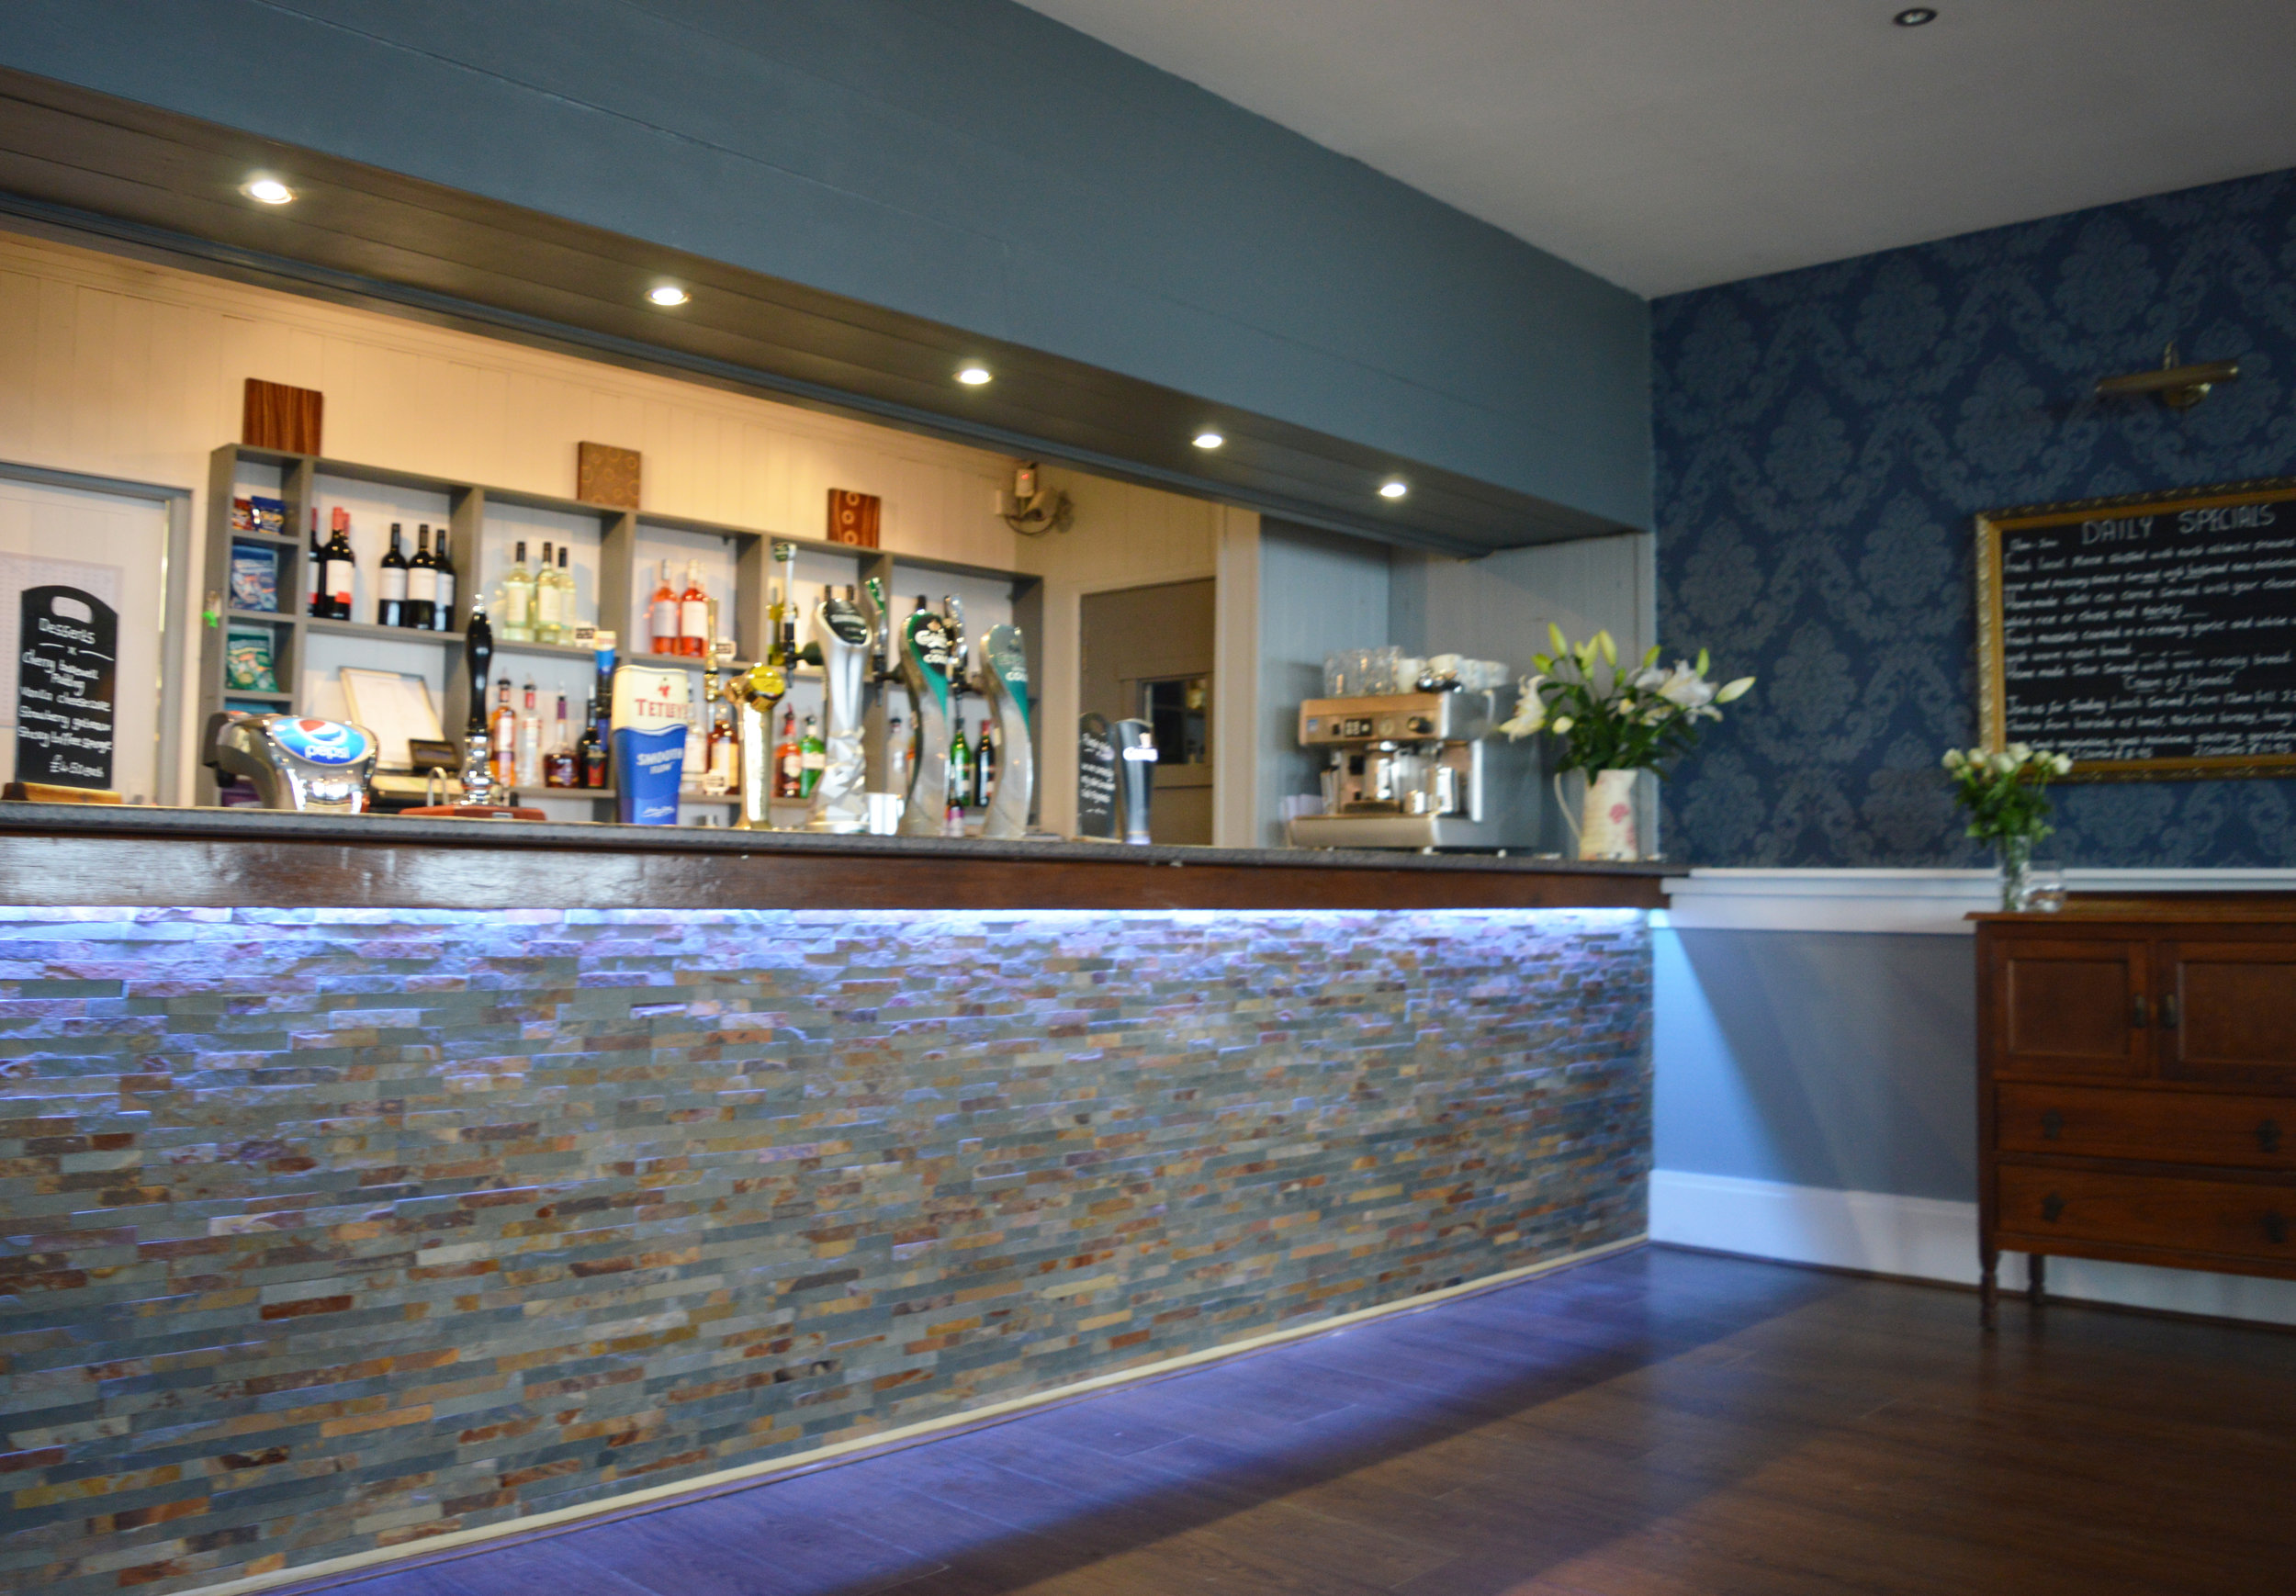 Above: The newly refurbished bar at Waterside in Corton, Suffolk